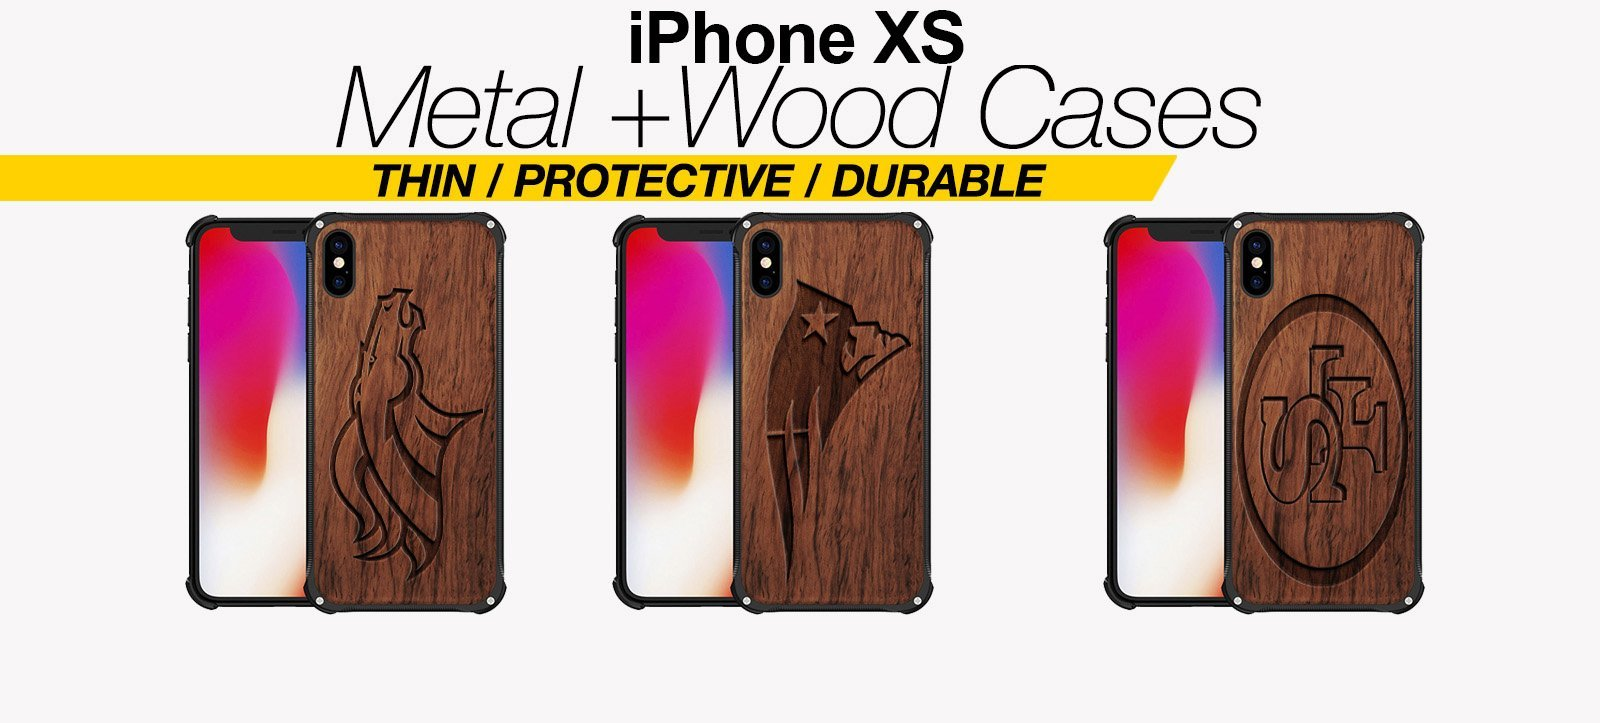 Wood And Metal iPhone XS Cases Best Wood And Metal iPhone XS Covers Thin Protective Eco Friendly